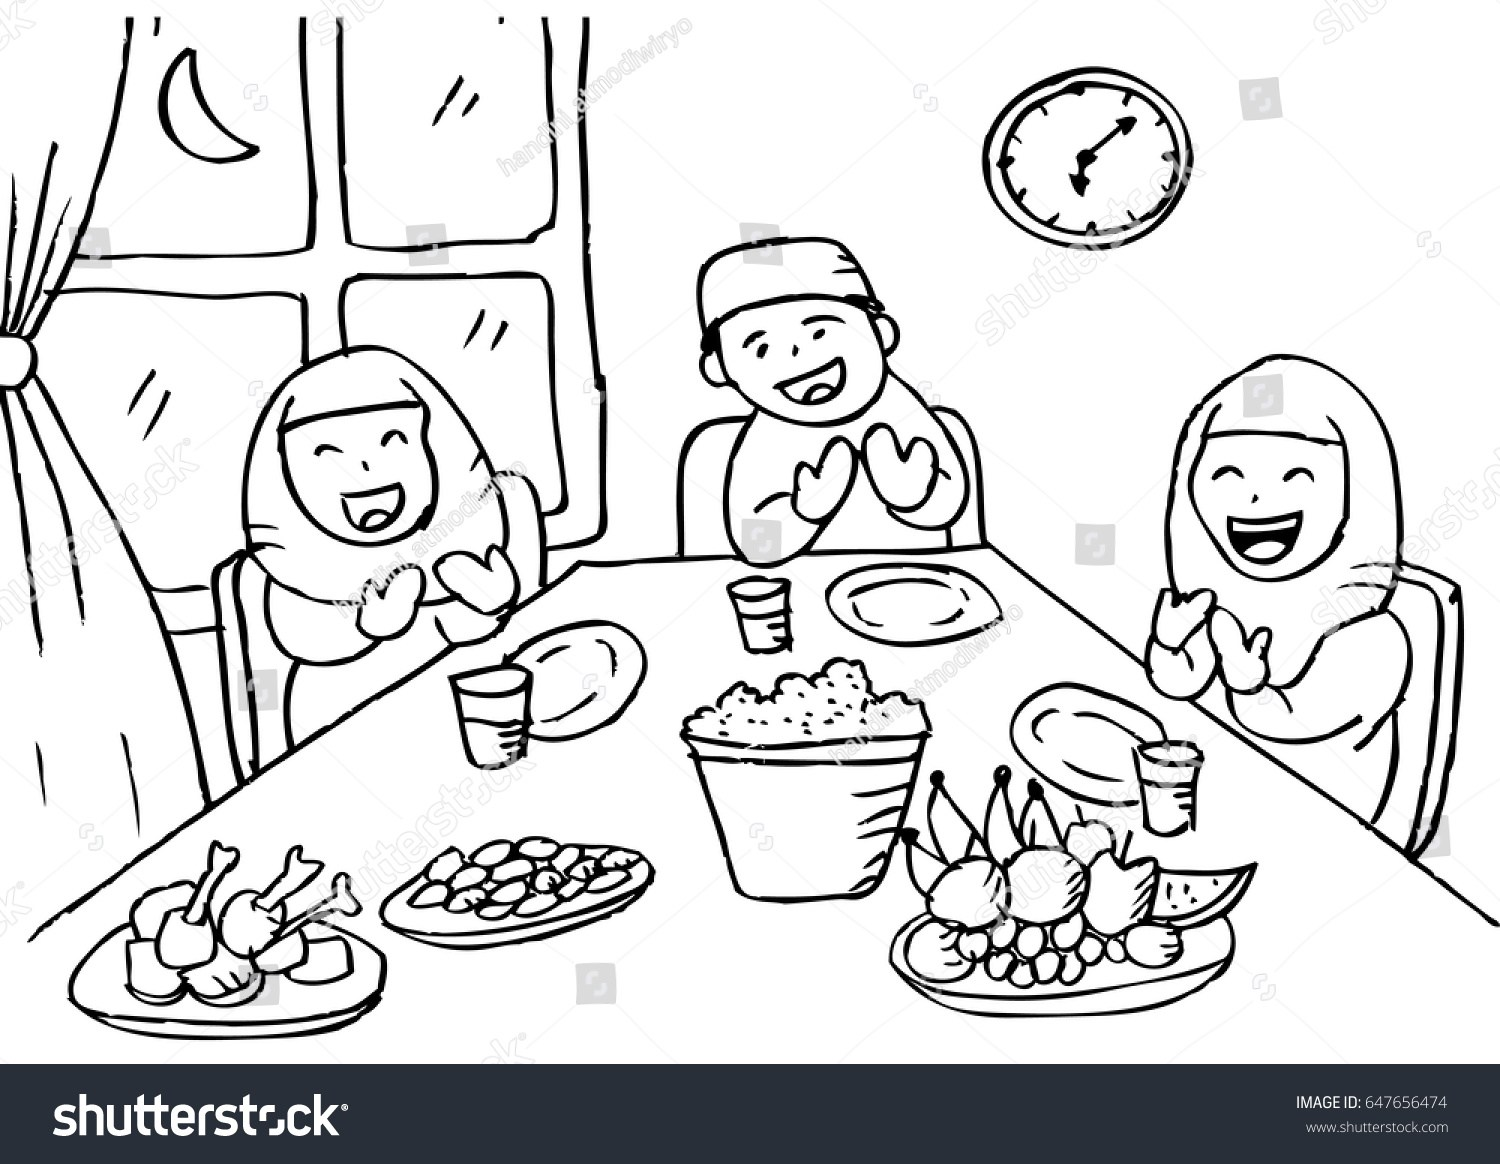 Black family eating together clipart royalty free library Family eating together clipart black and white 5 » Clipart Portal royalty free library